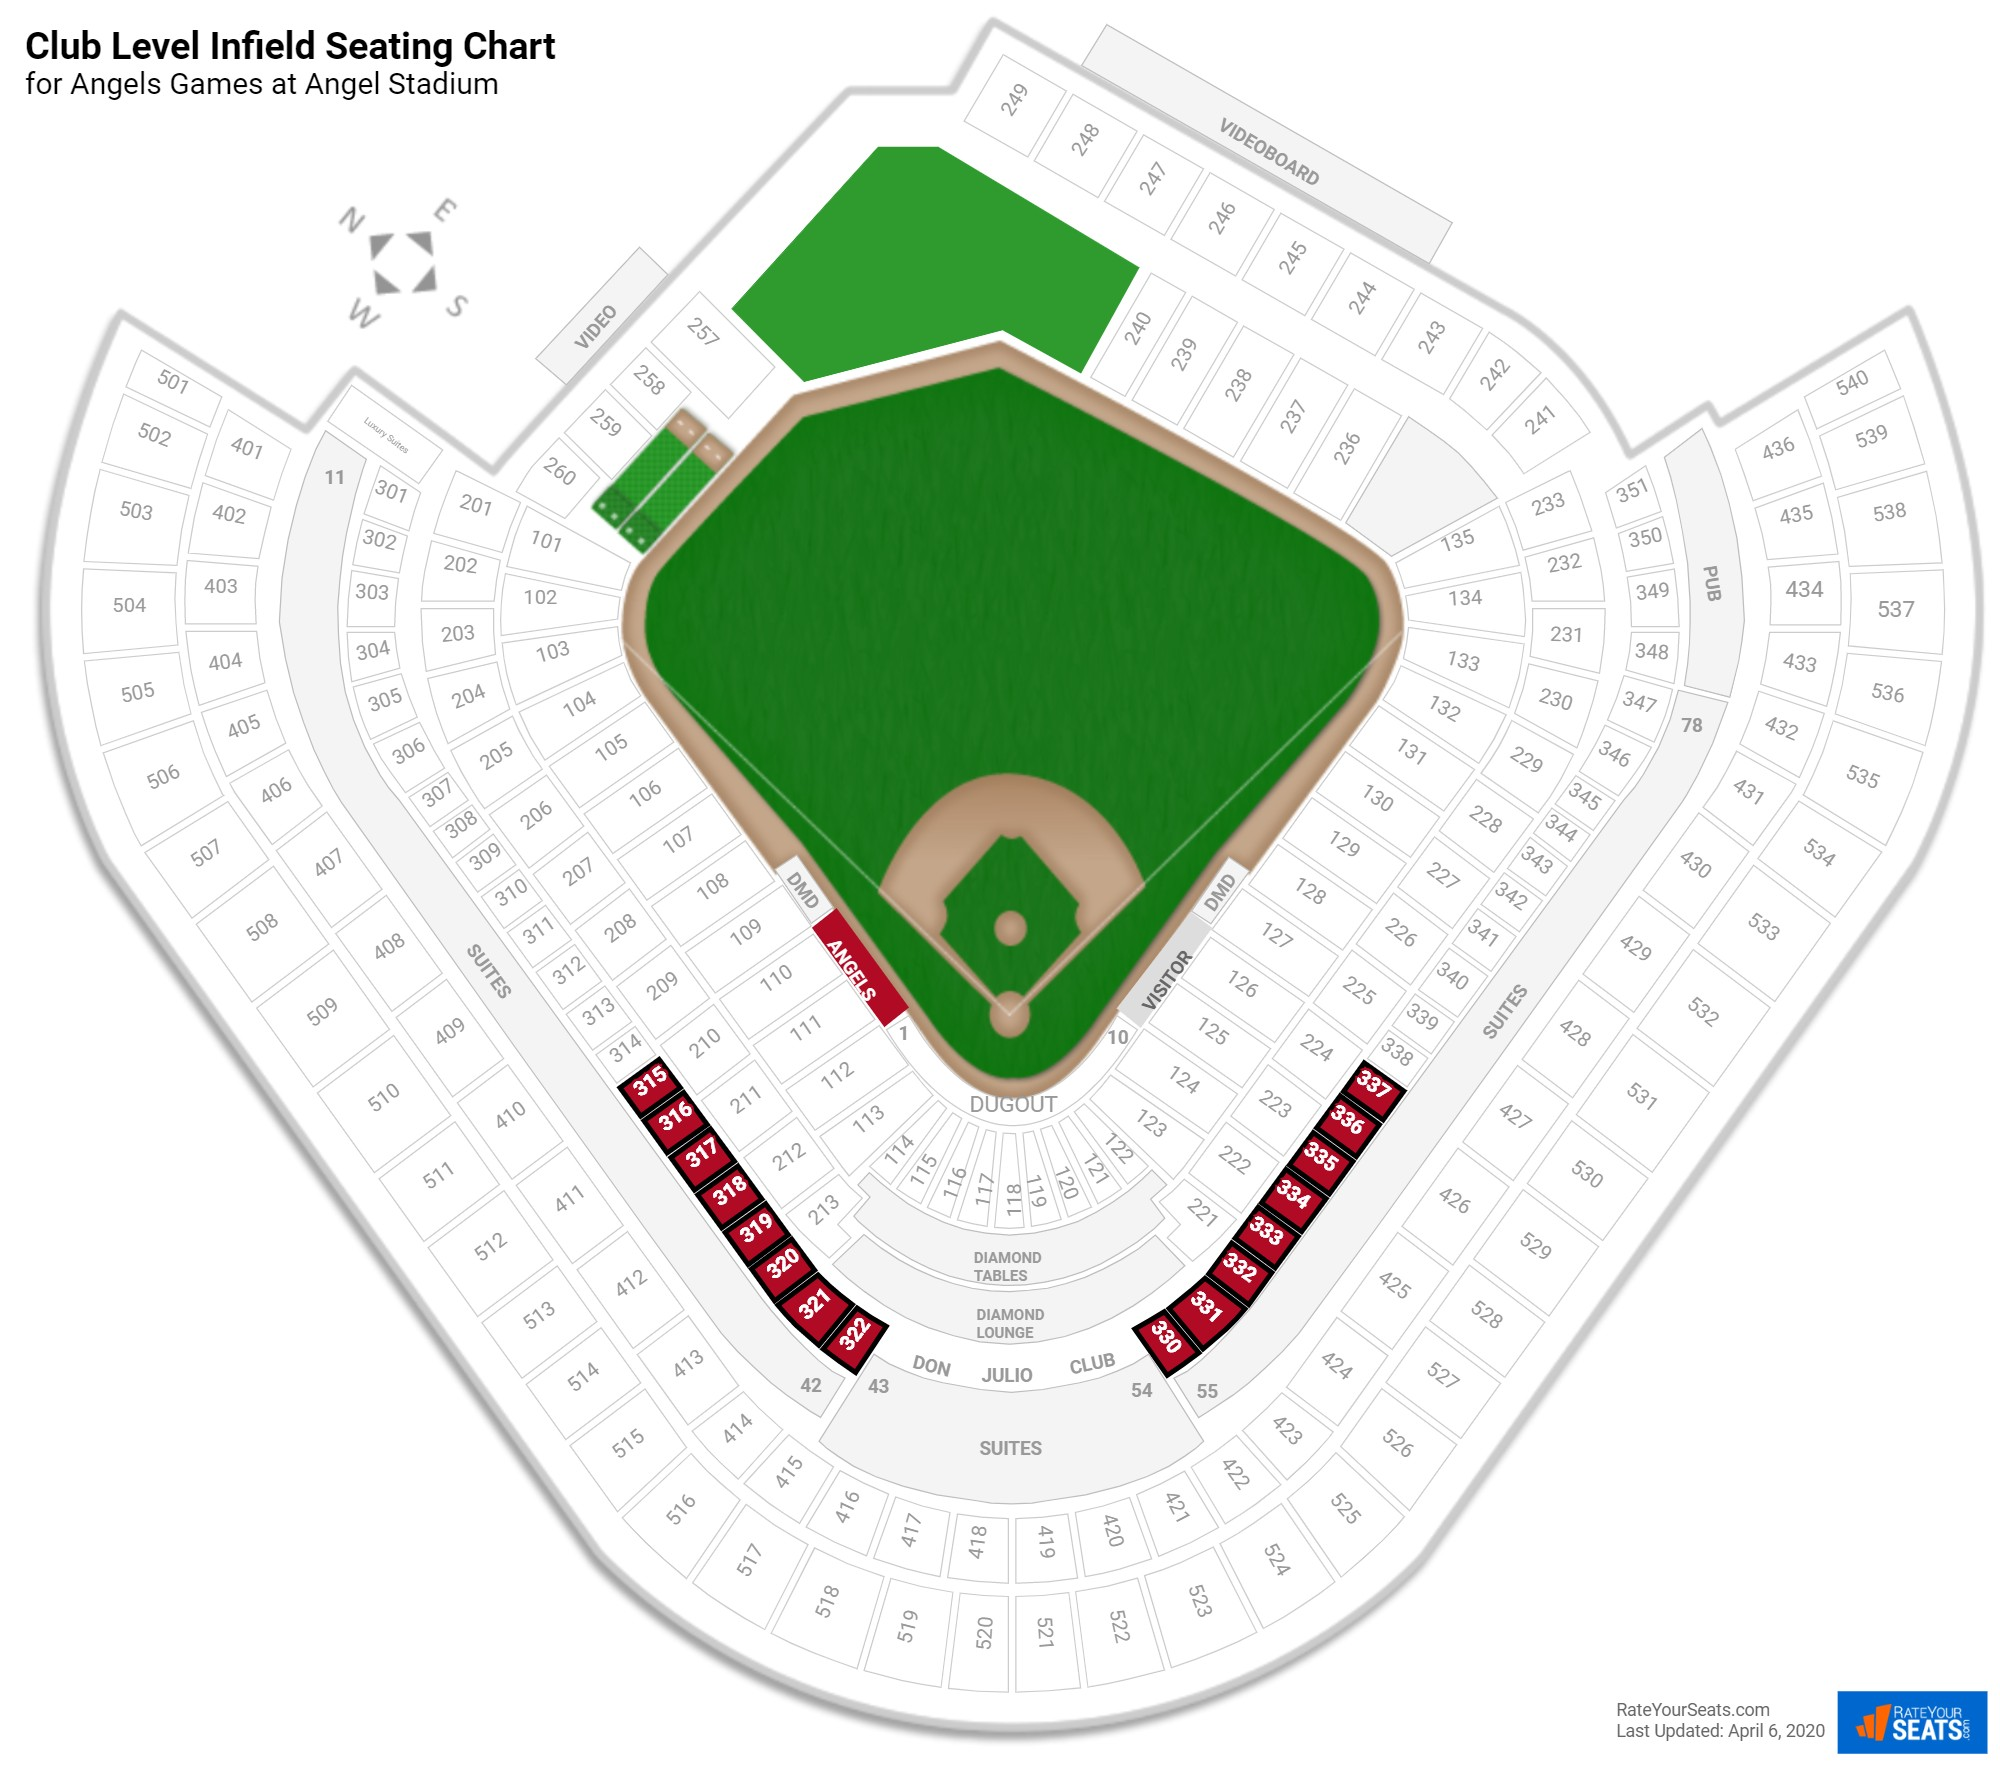 Angel Stadium Club Level Infield seating chart